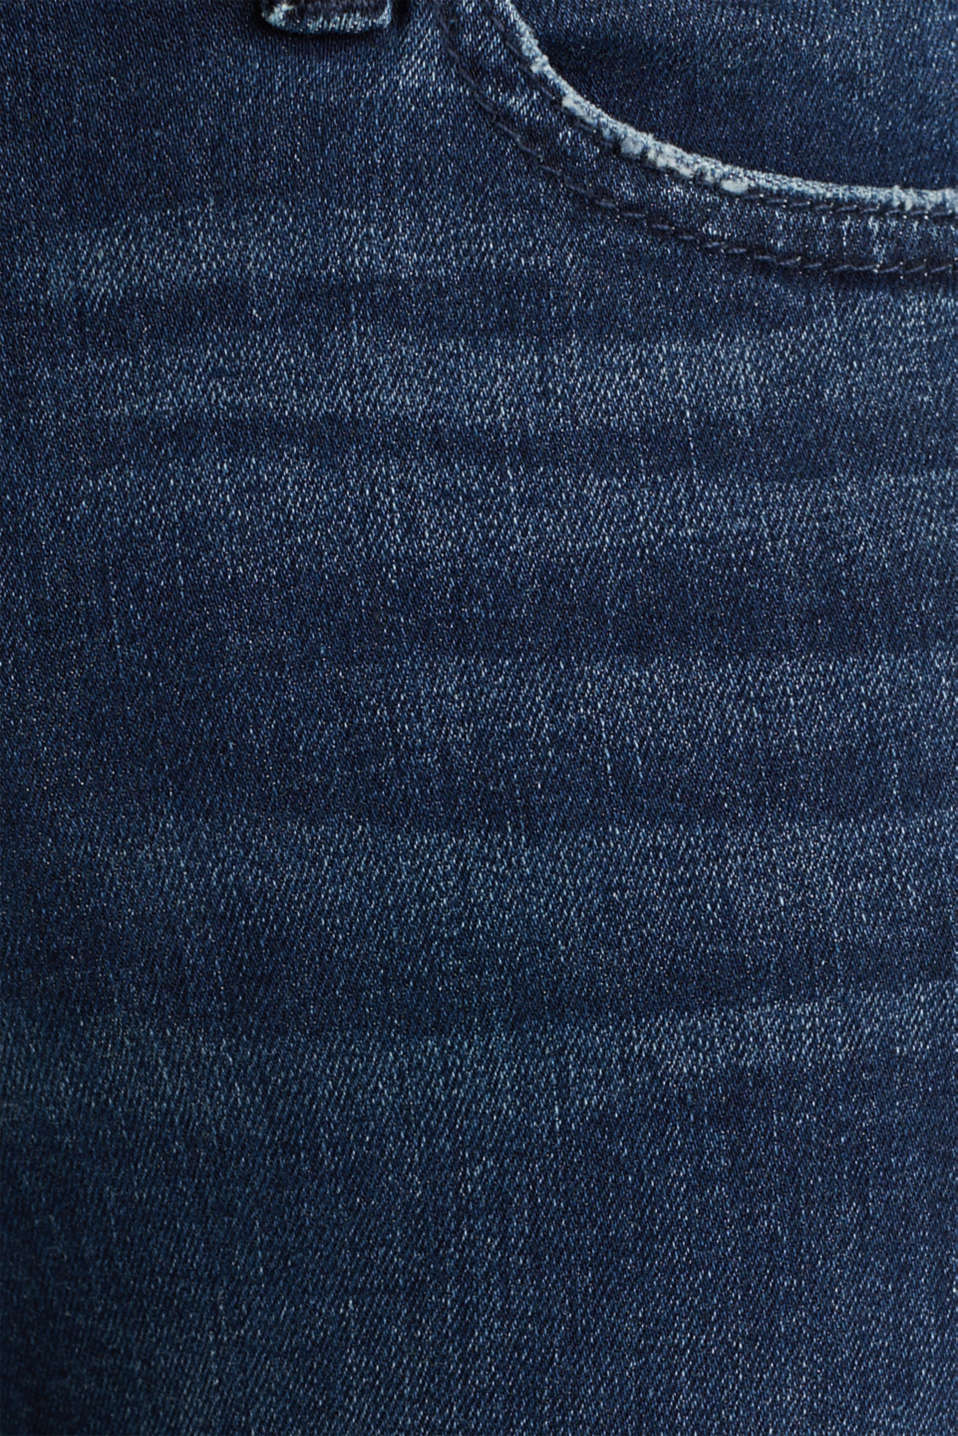 Jeans with tape details, BLUE DARK WASH, detail image number 4